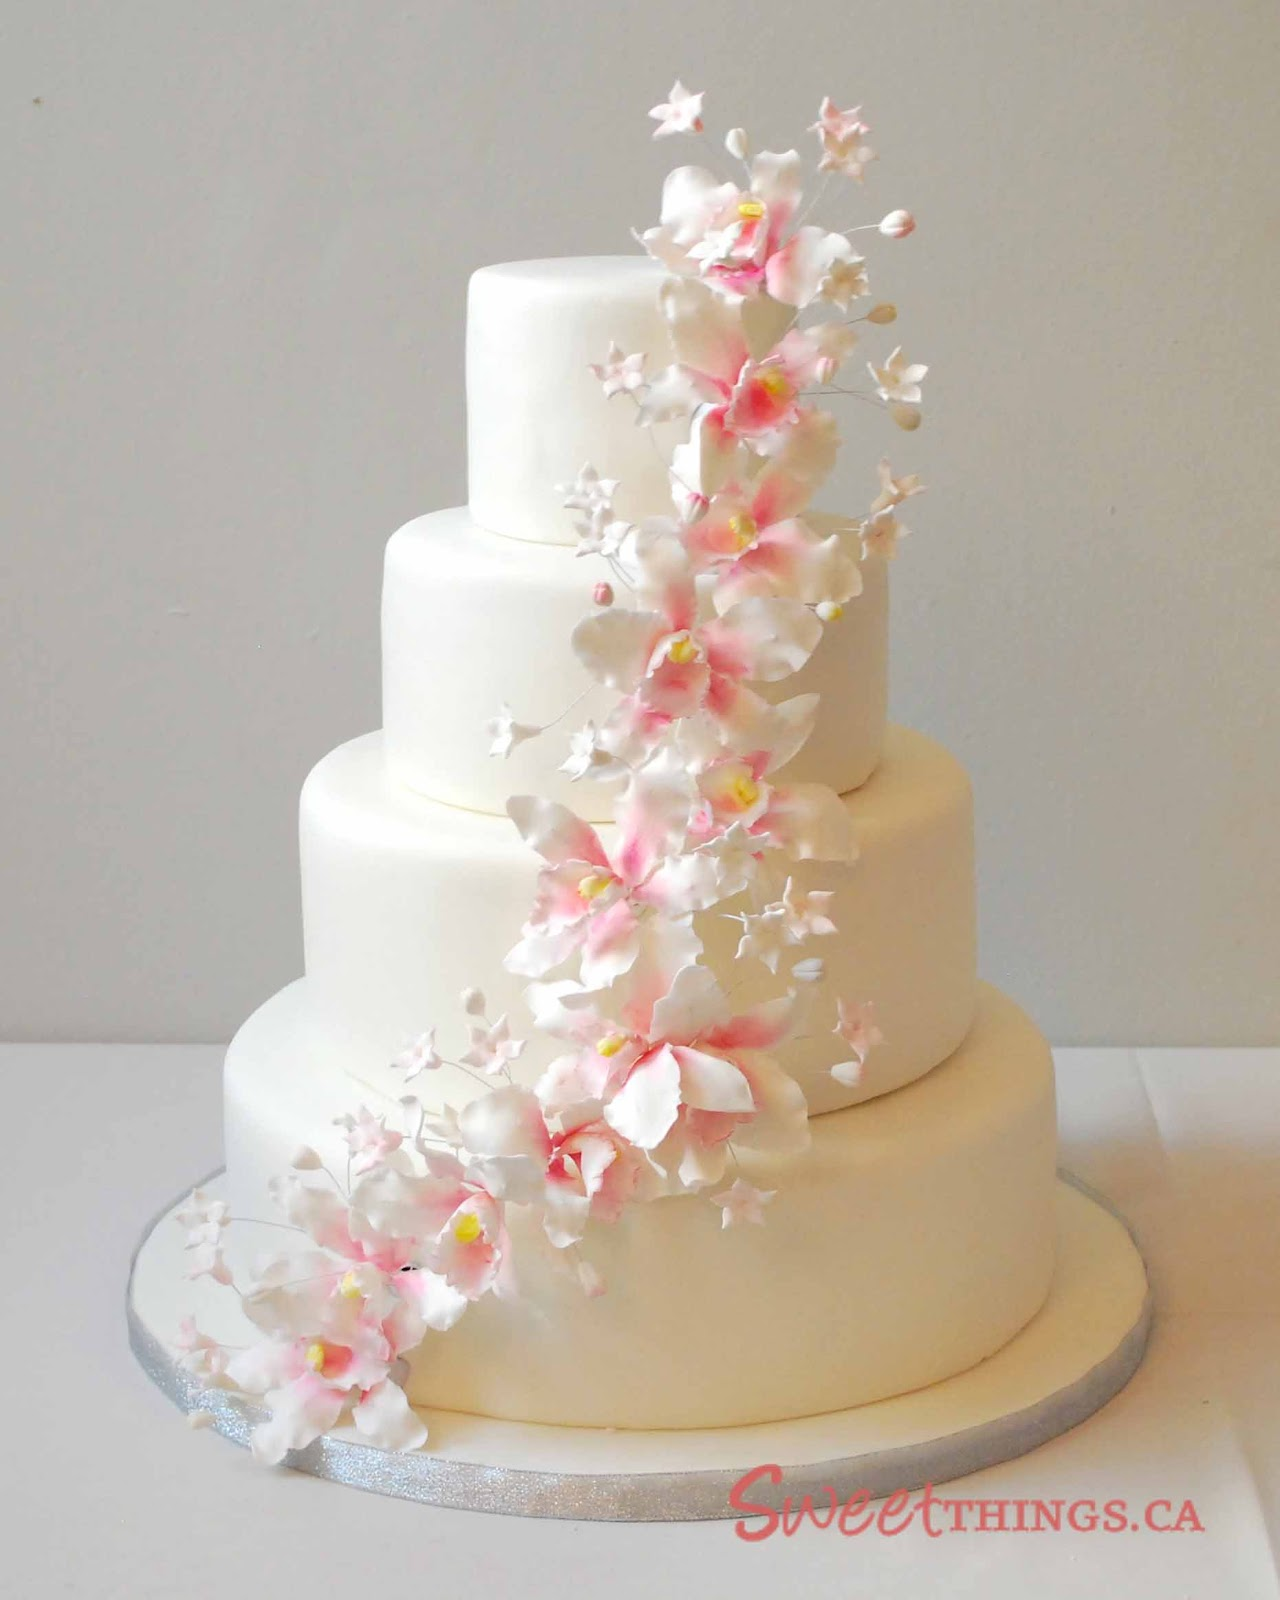 sweetthings 4 tier wedding cake with sugarpaste orchids. Black Bedroom Furniture Sets. Home Design Ideas